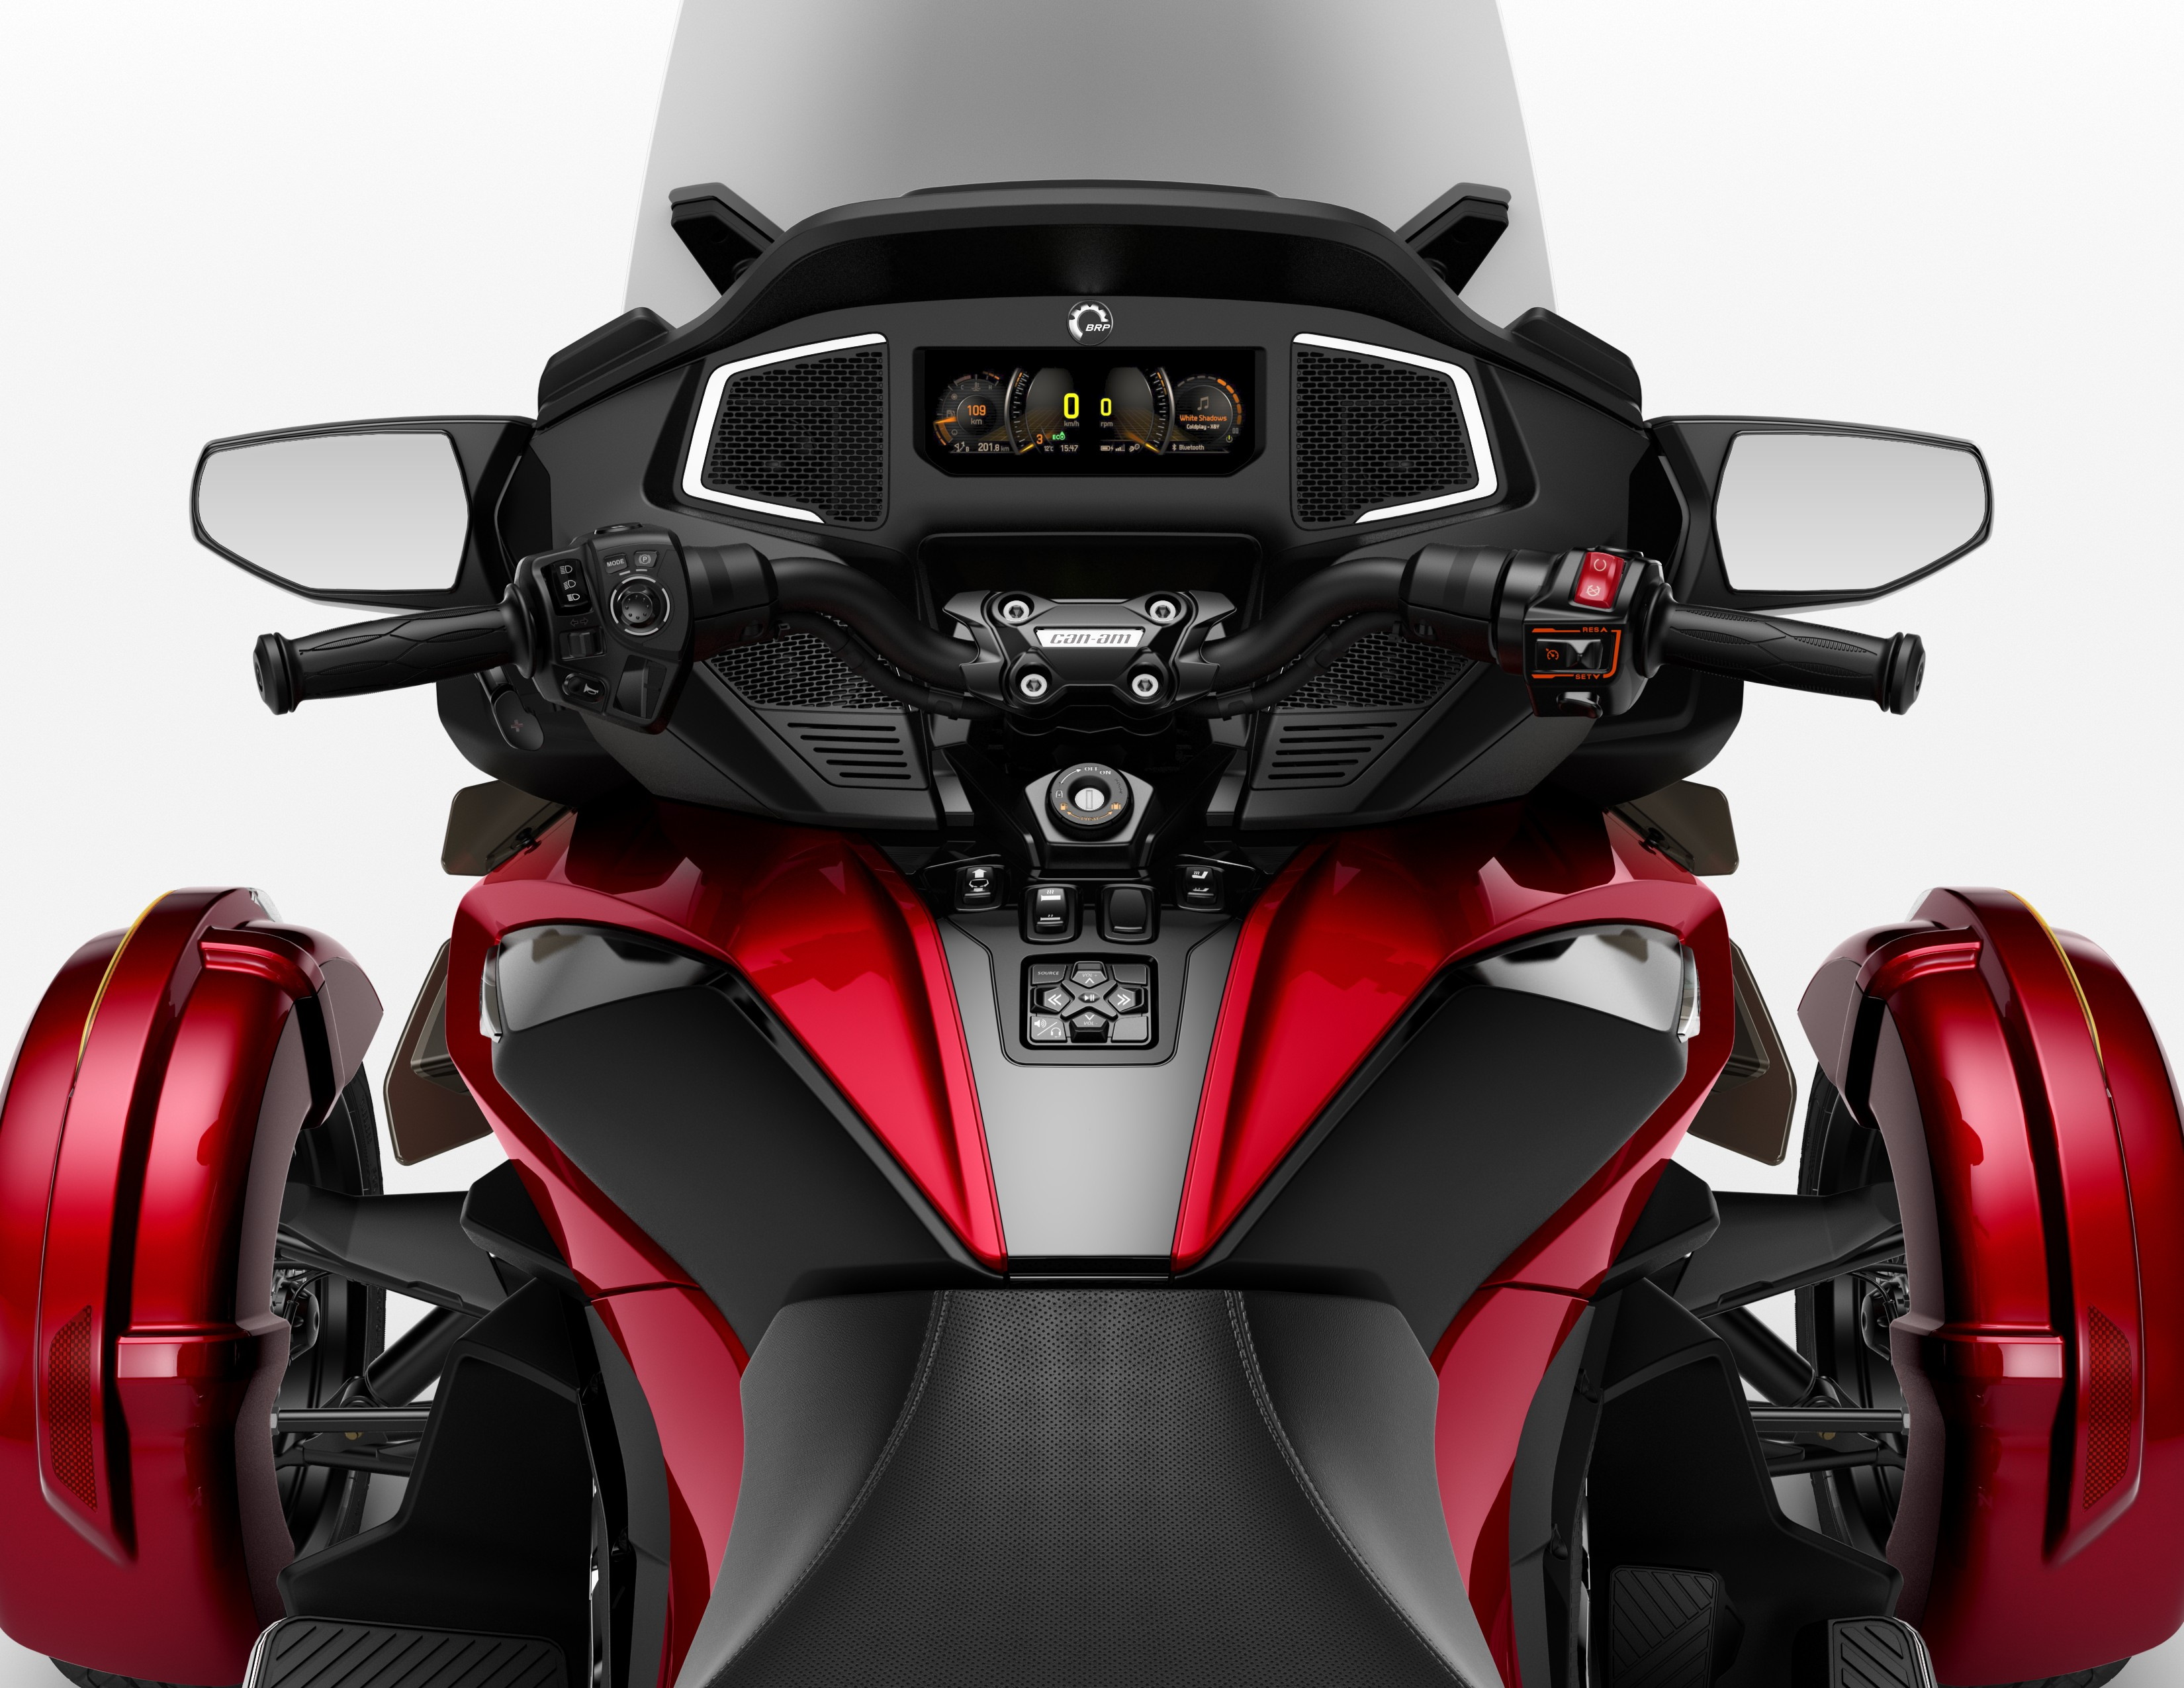 2020 Can Am Spyder Rt And Rt Limited First Look Cycle World